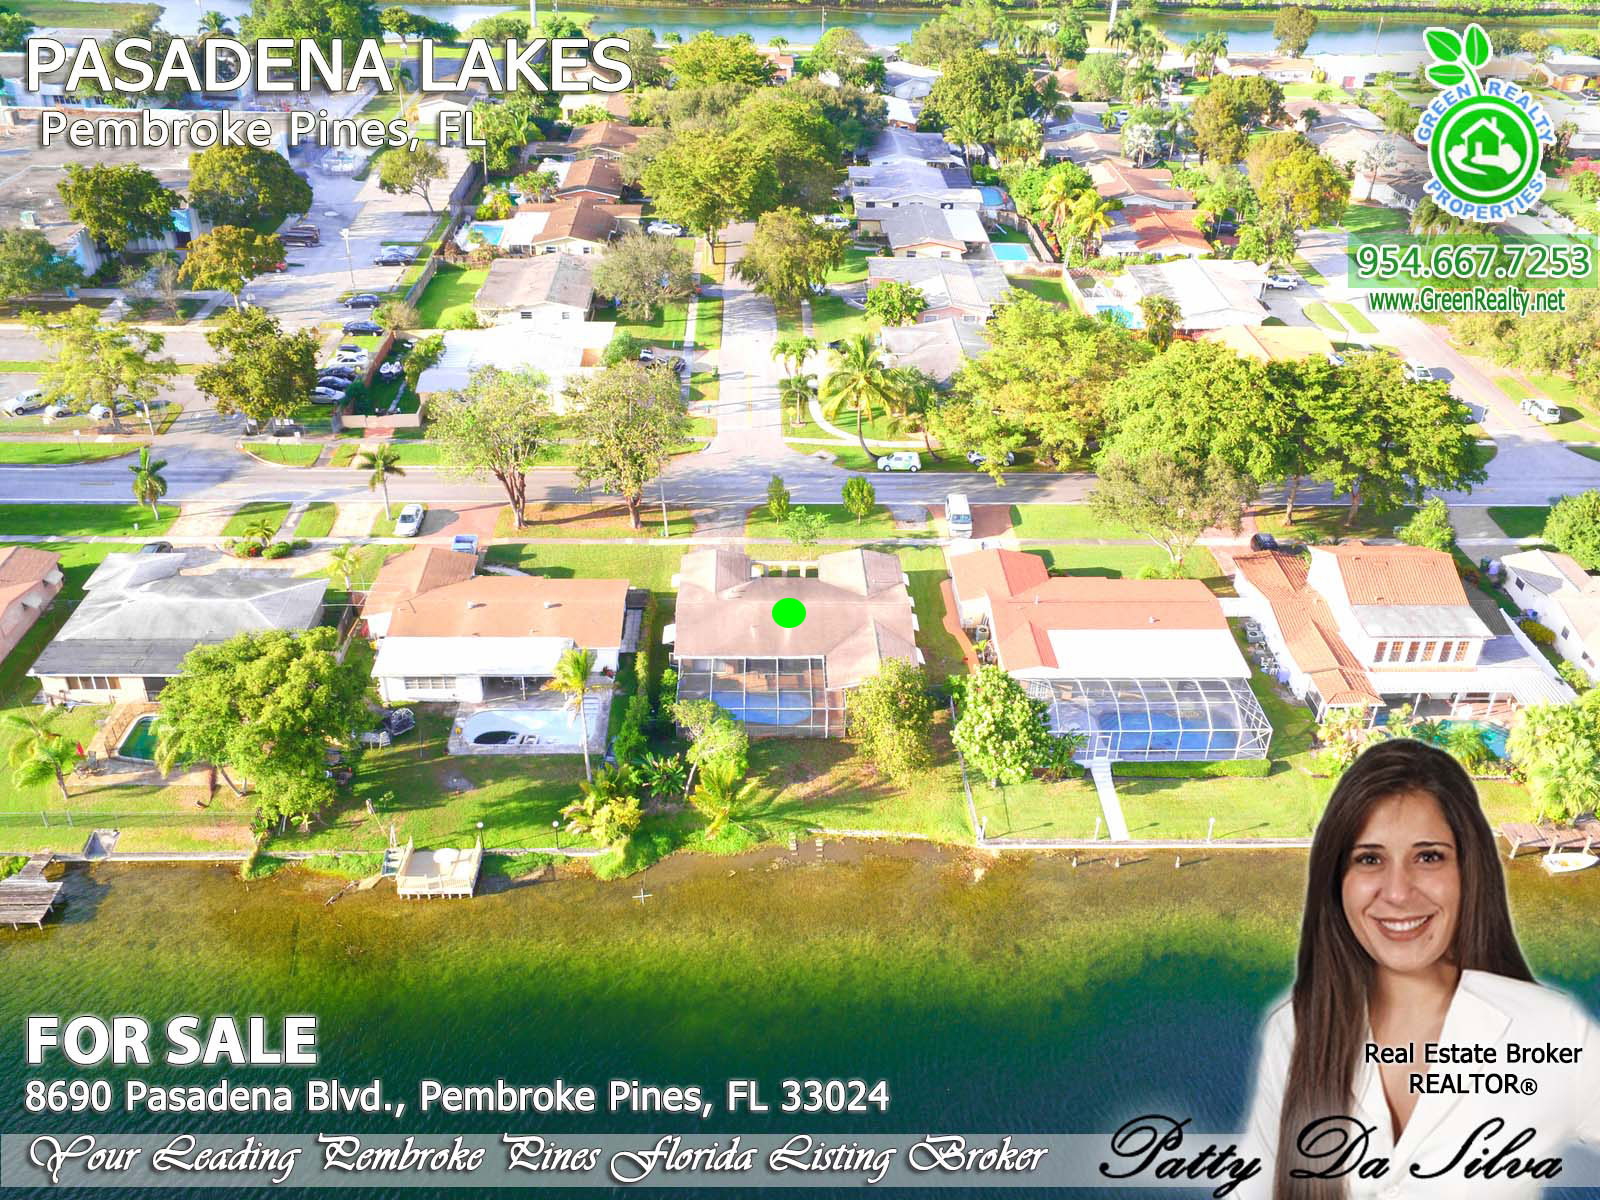 homes-for-sale-in-pasadena-lakes-pemrbroke-pines-fl-by-patty-da-silva-green-realty-properties